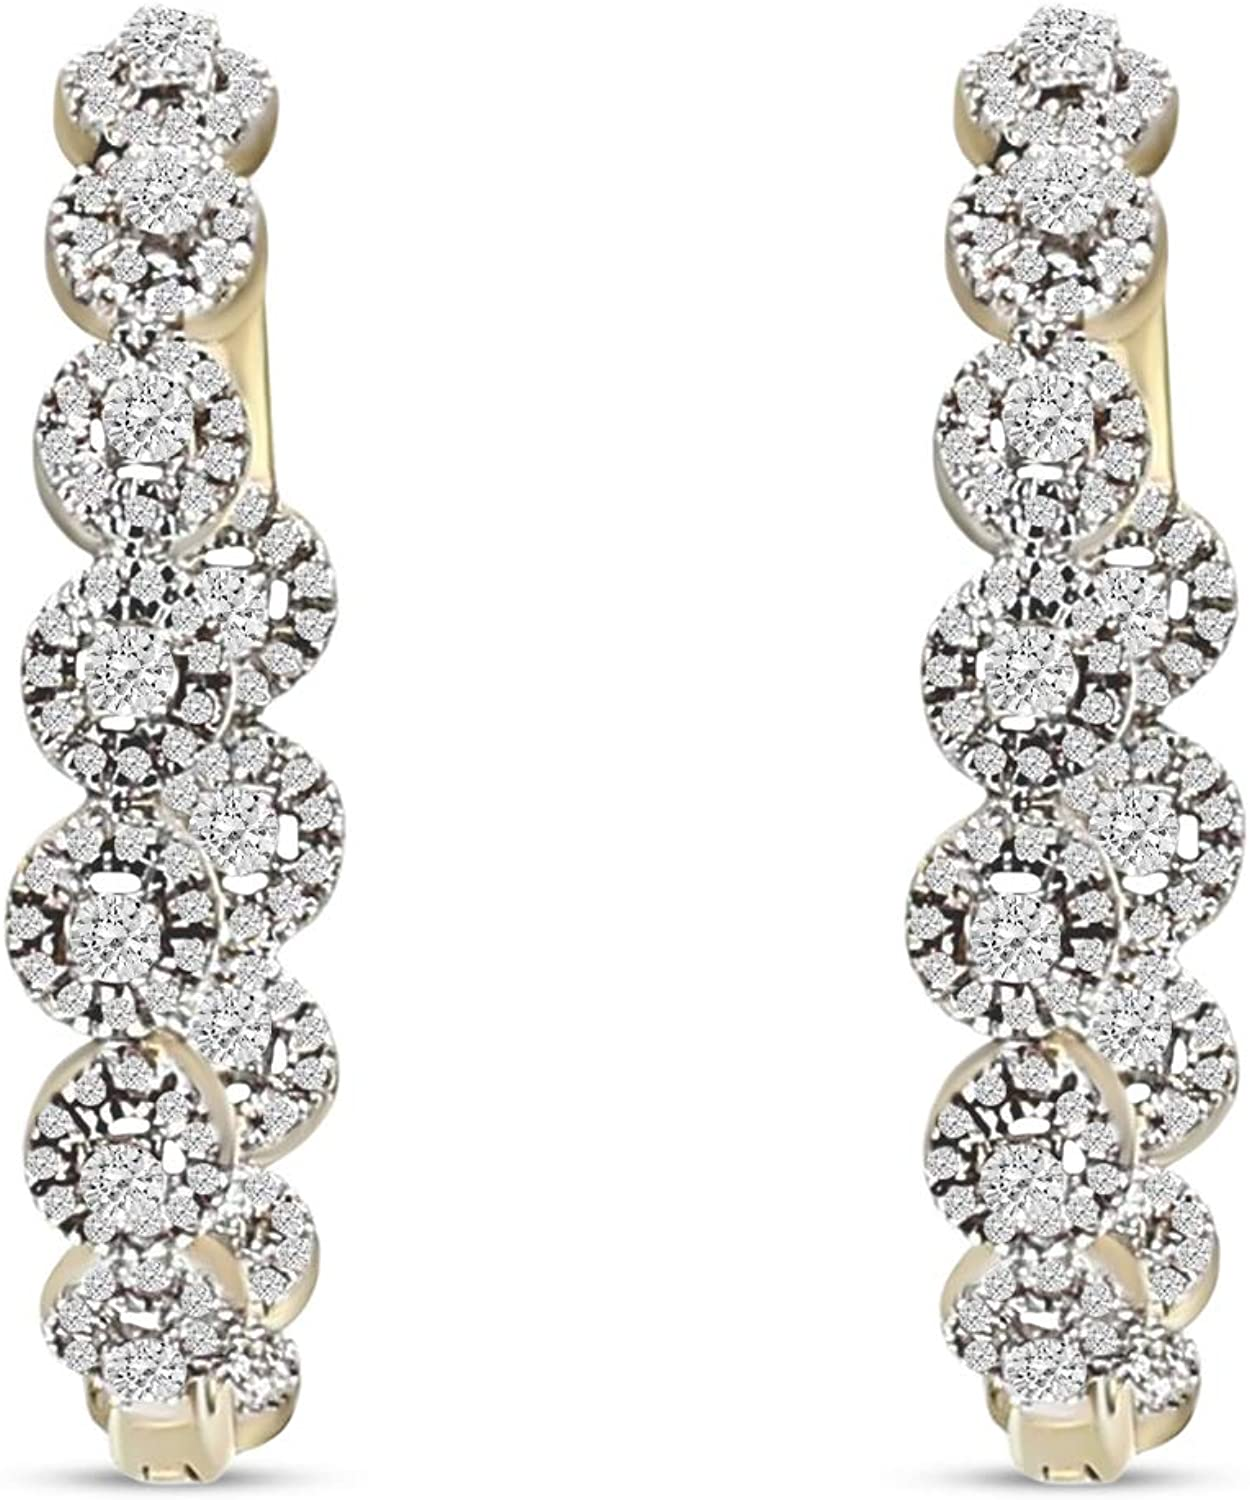 1/4 Ct to 5/8 Ct Diamond Huggie Hoop Earrings 10KT Gold Natural Diamond Earrings GH-I1 Quality Diamond Hoop Earrings (Jewelry Gift For Women)